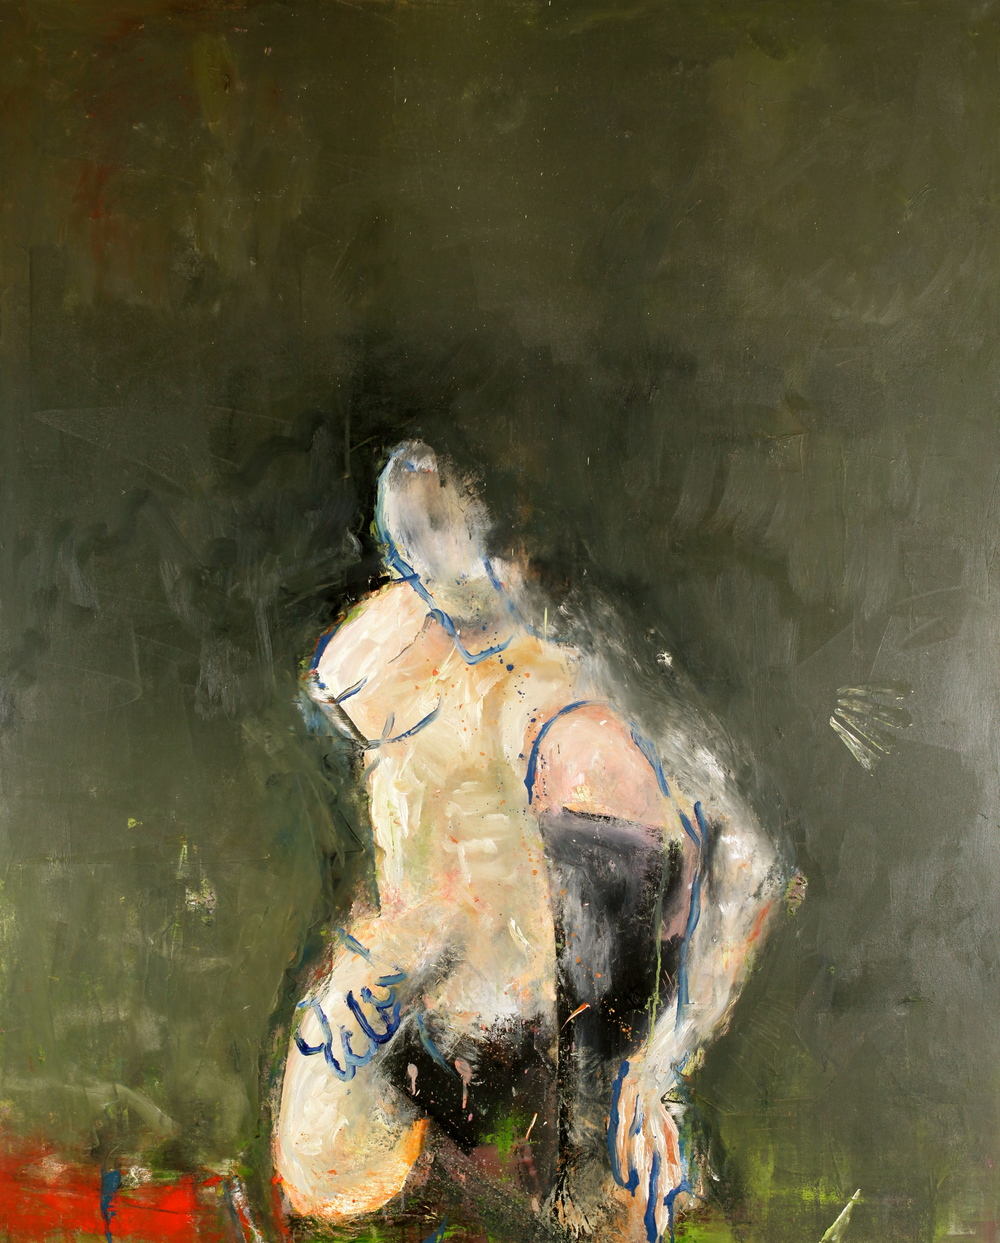 'Man green'  122cm x 152cm x 4cm  Oil on canvas